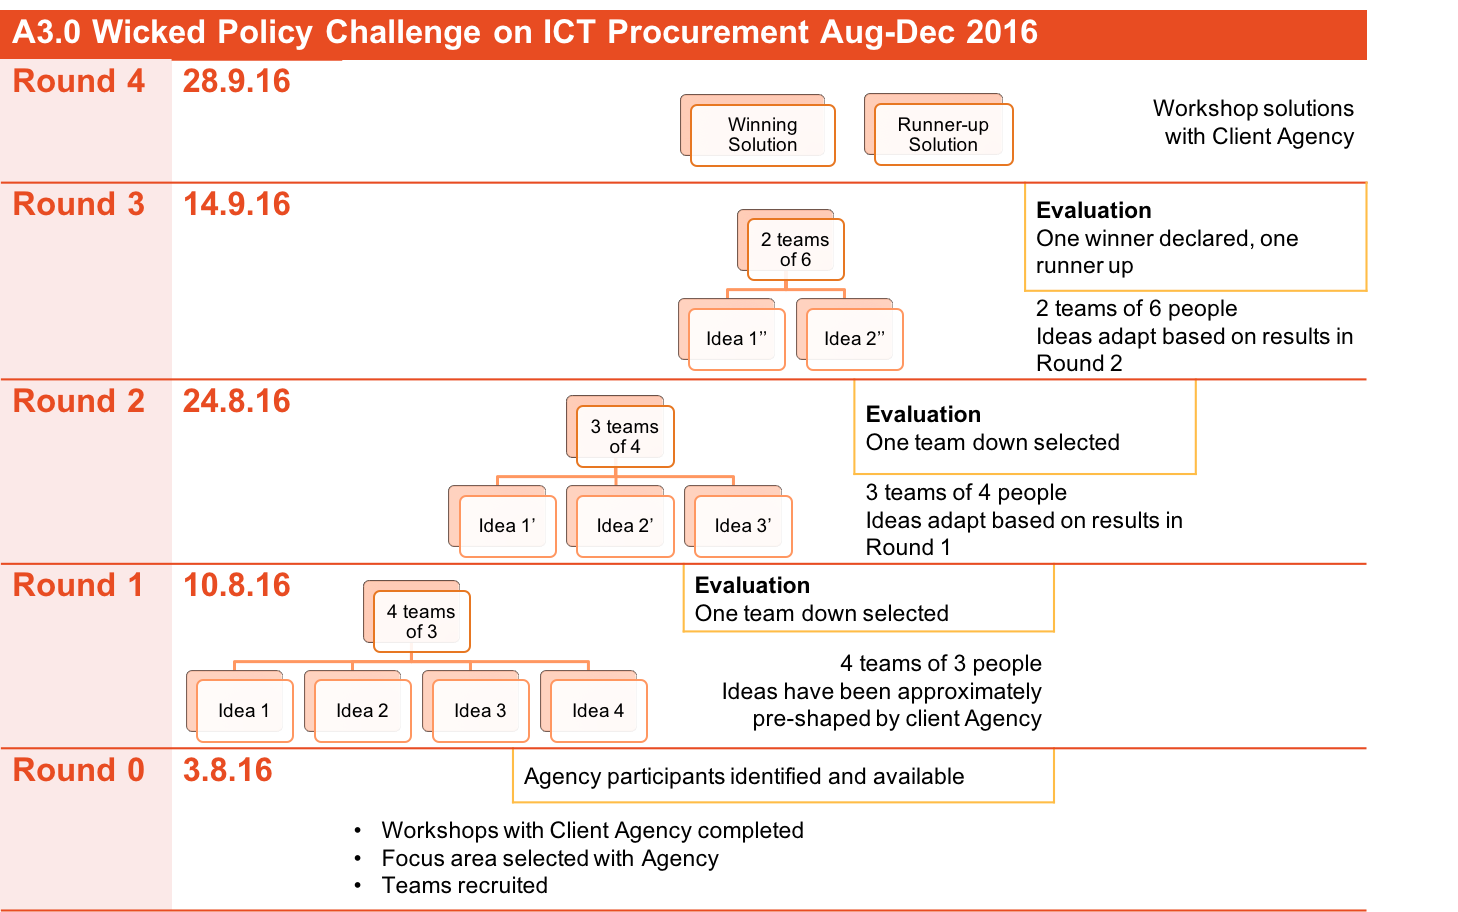 Schedule for ICT Procurement Challenge